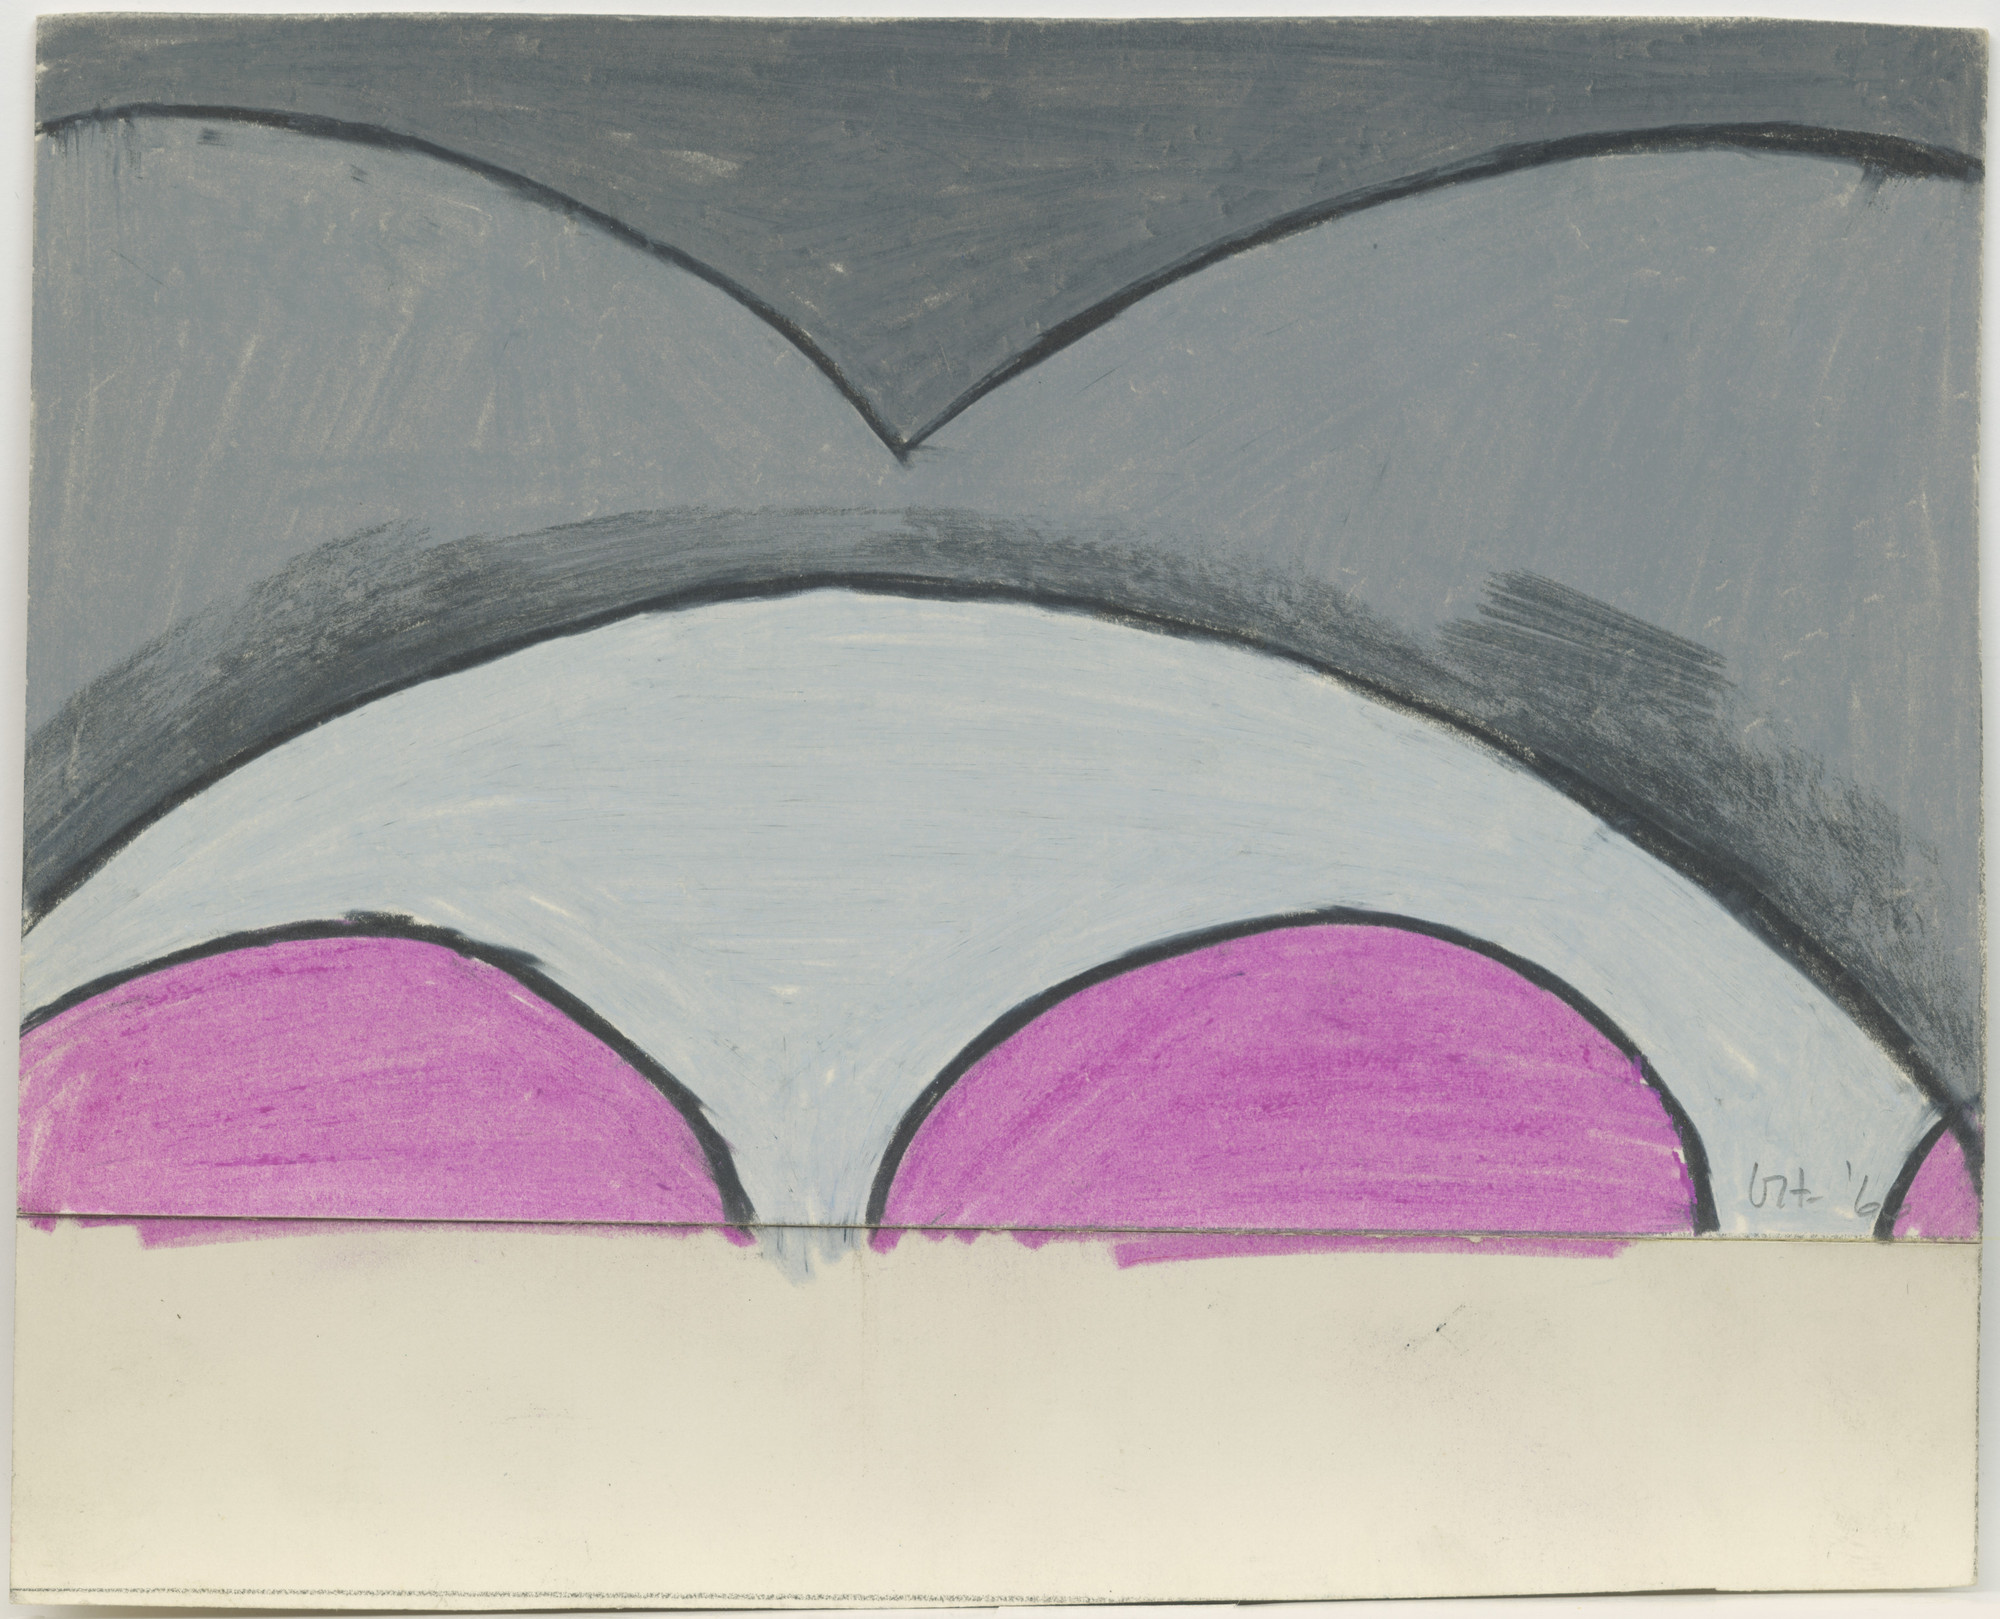 David Hockney. Untitled, design for Ubu Roi. (1966)